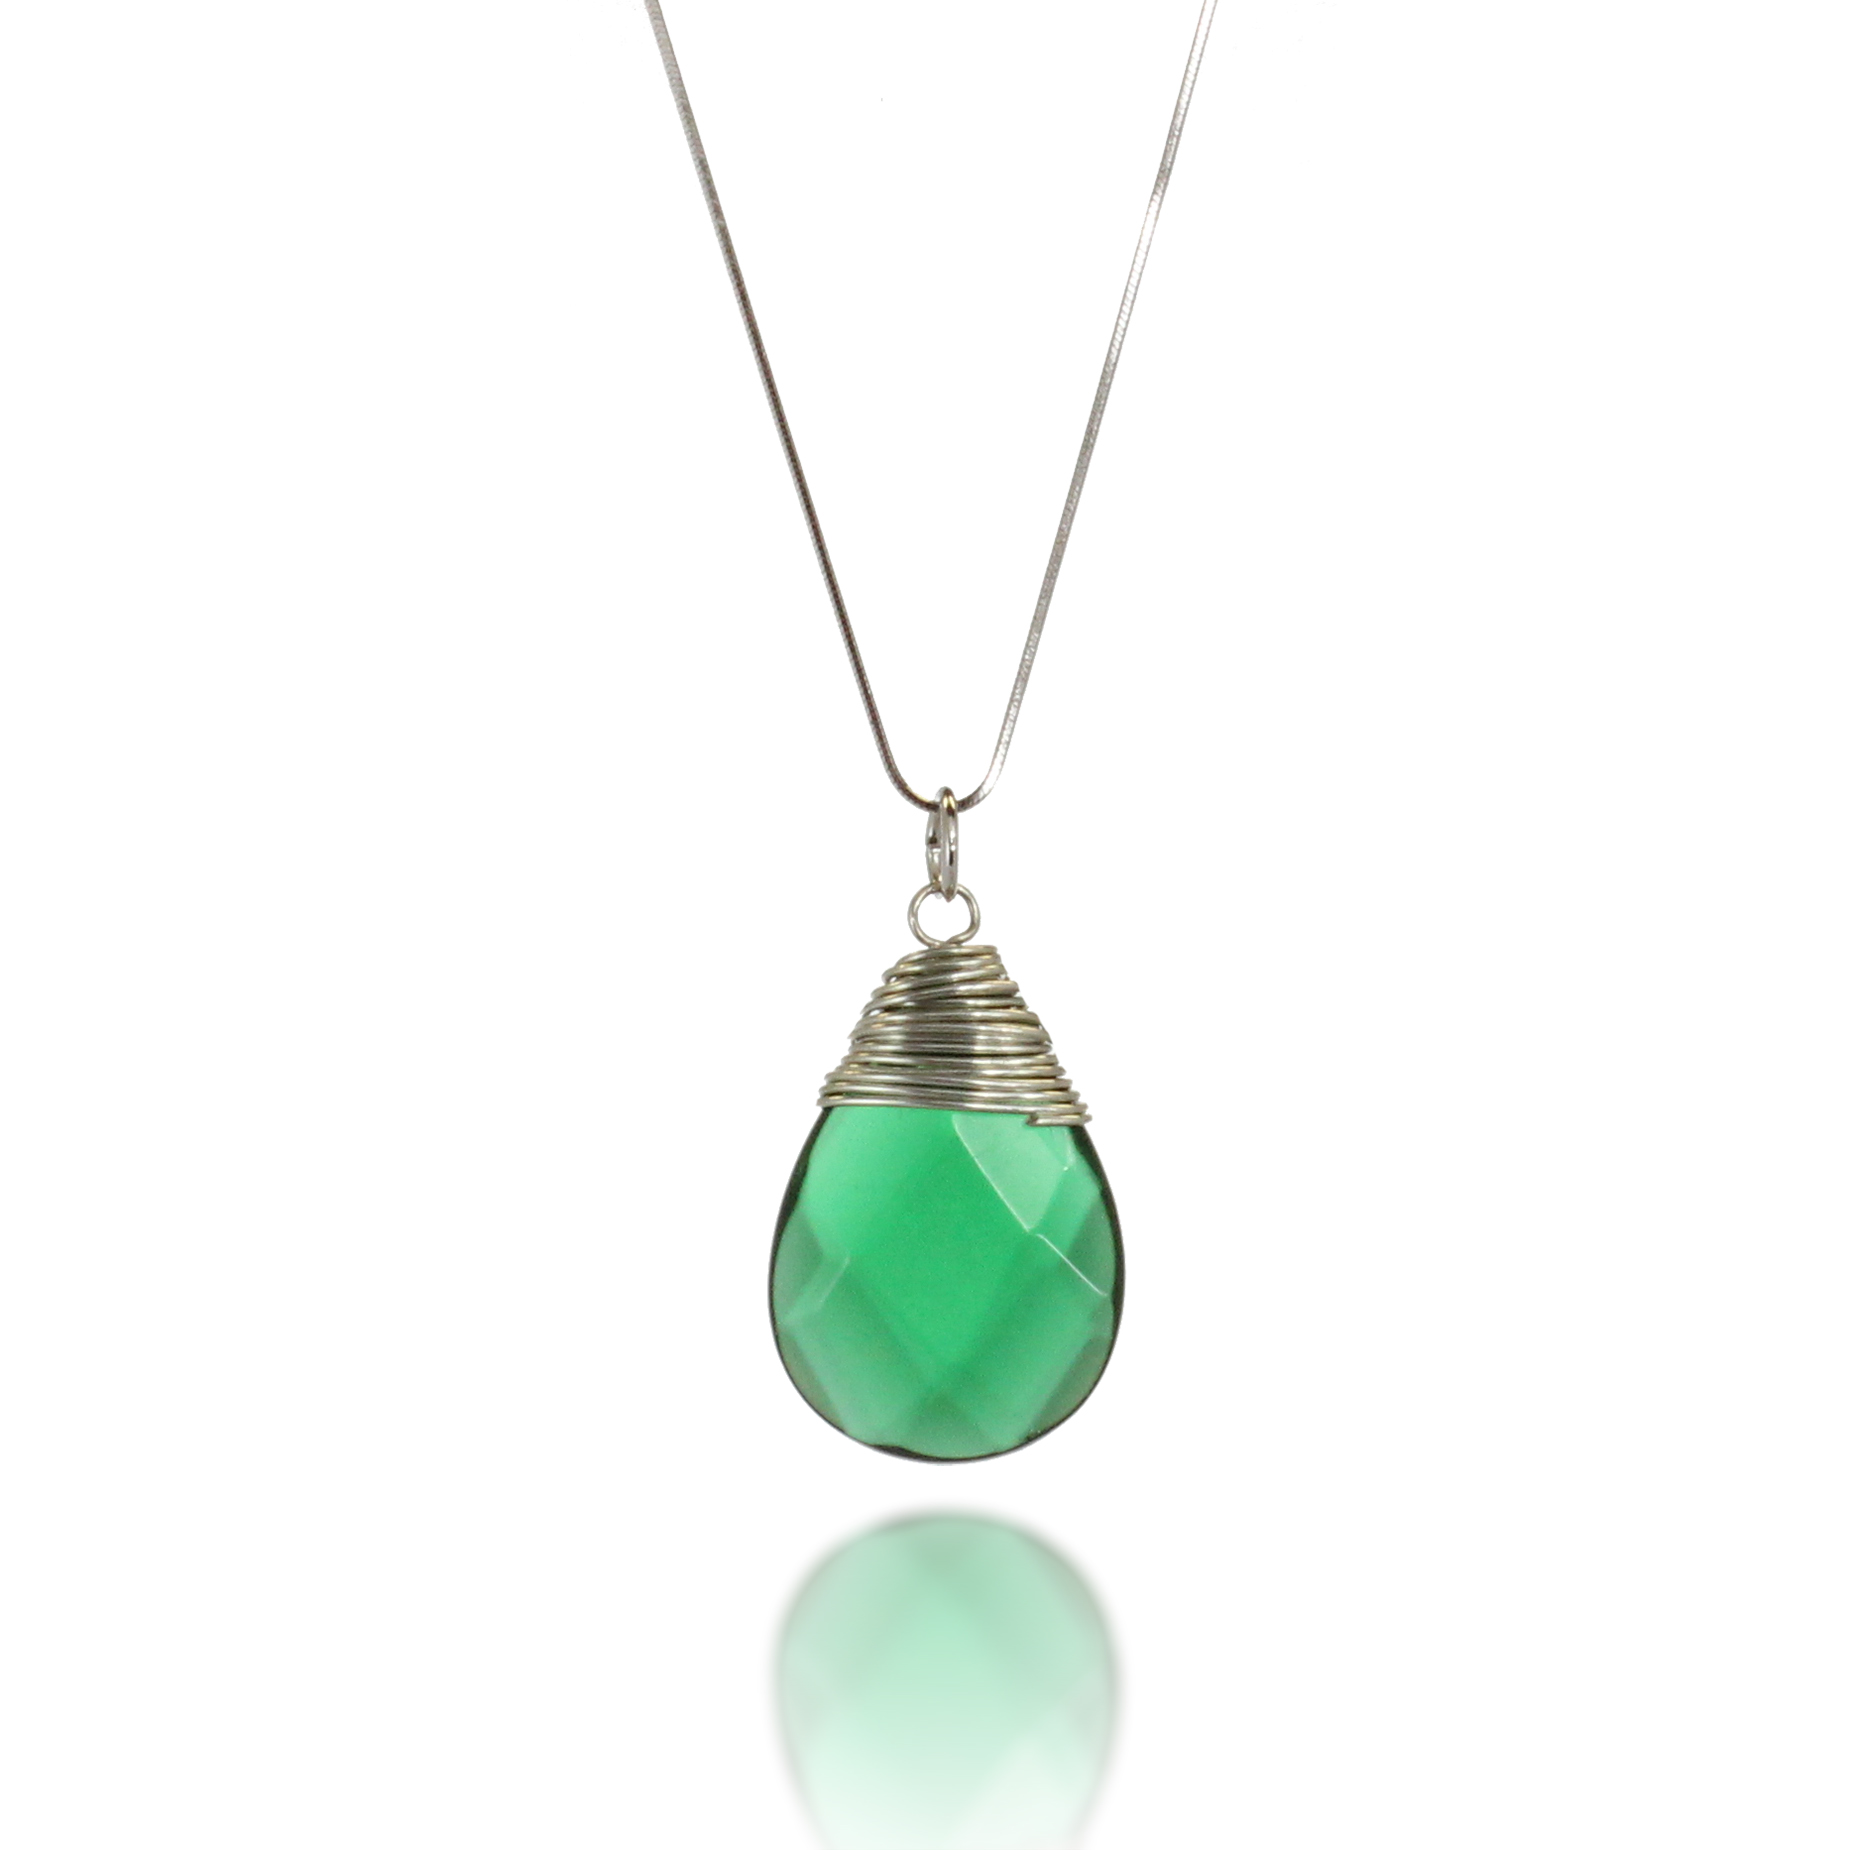 Starfish Project, Pine Green Wire-Wrapped Teardrop 16 inch Pendant Necklace